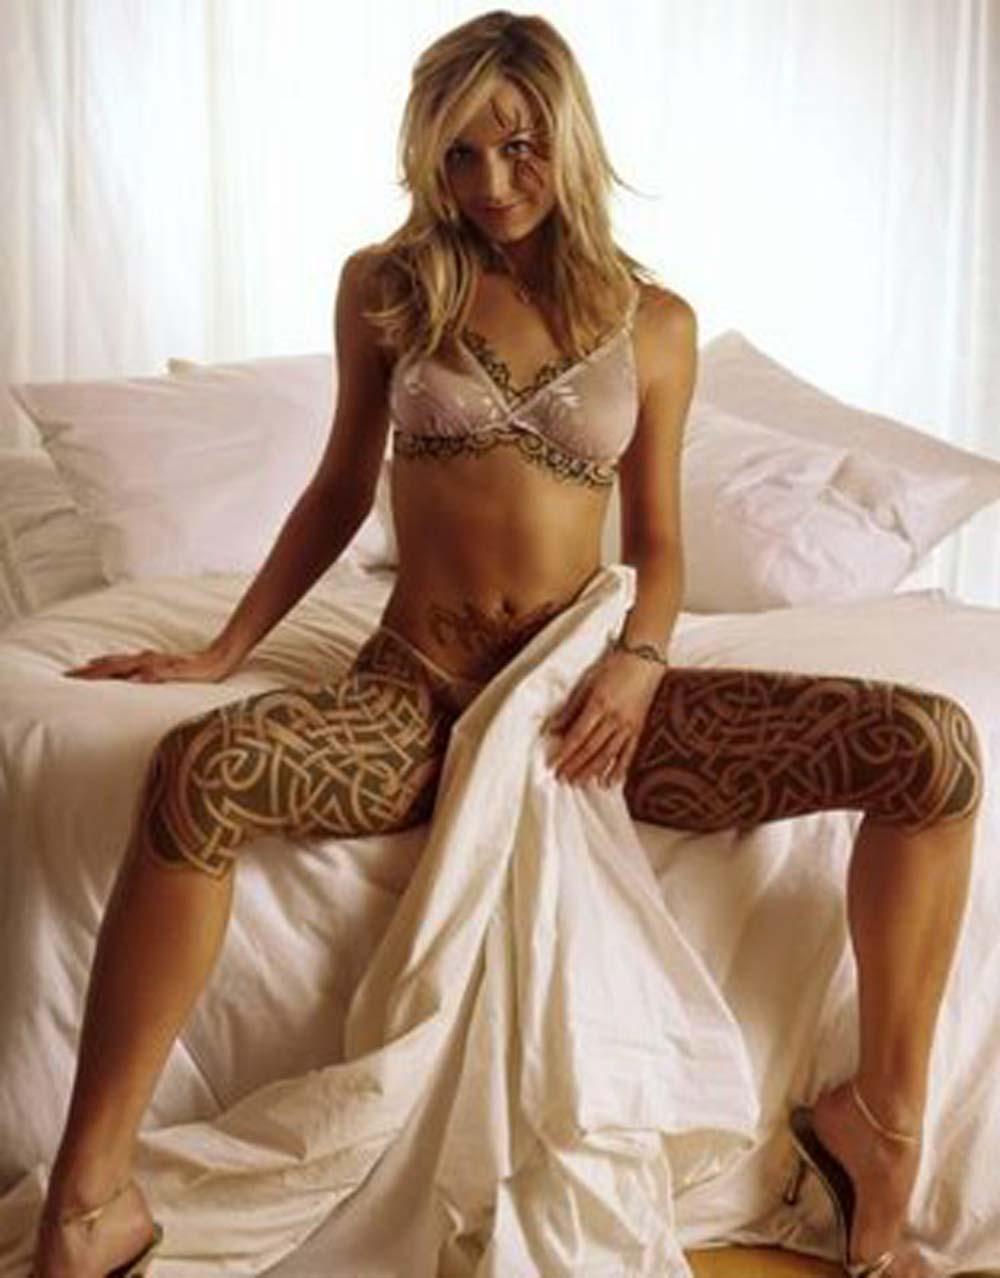 The Sexiest Tattoos For Girls